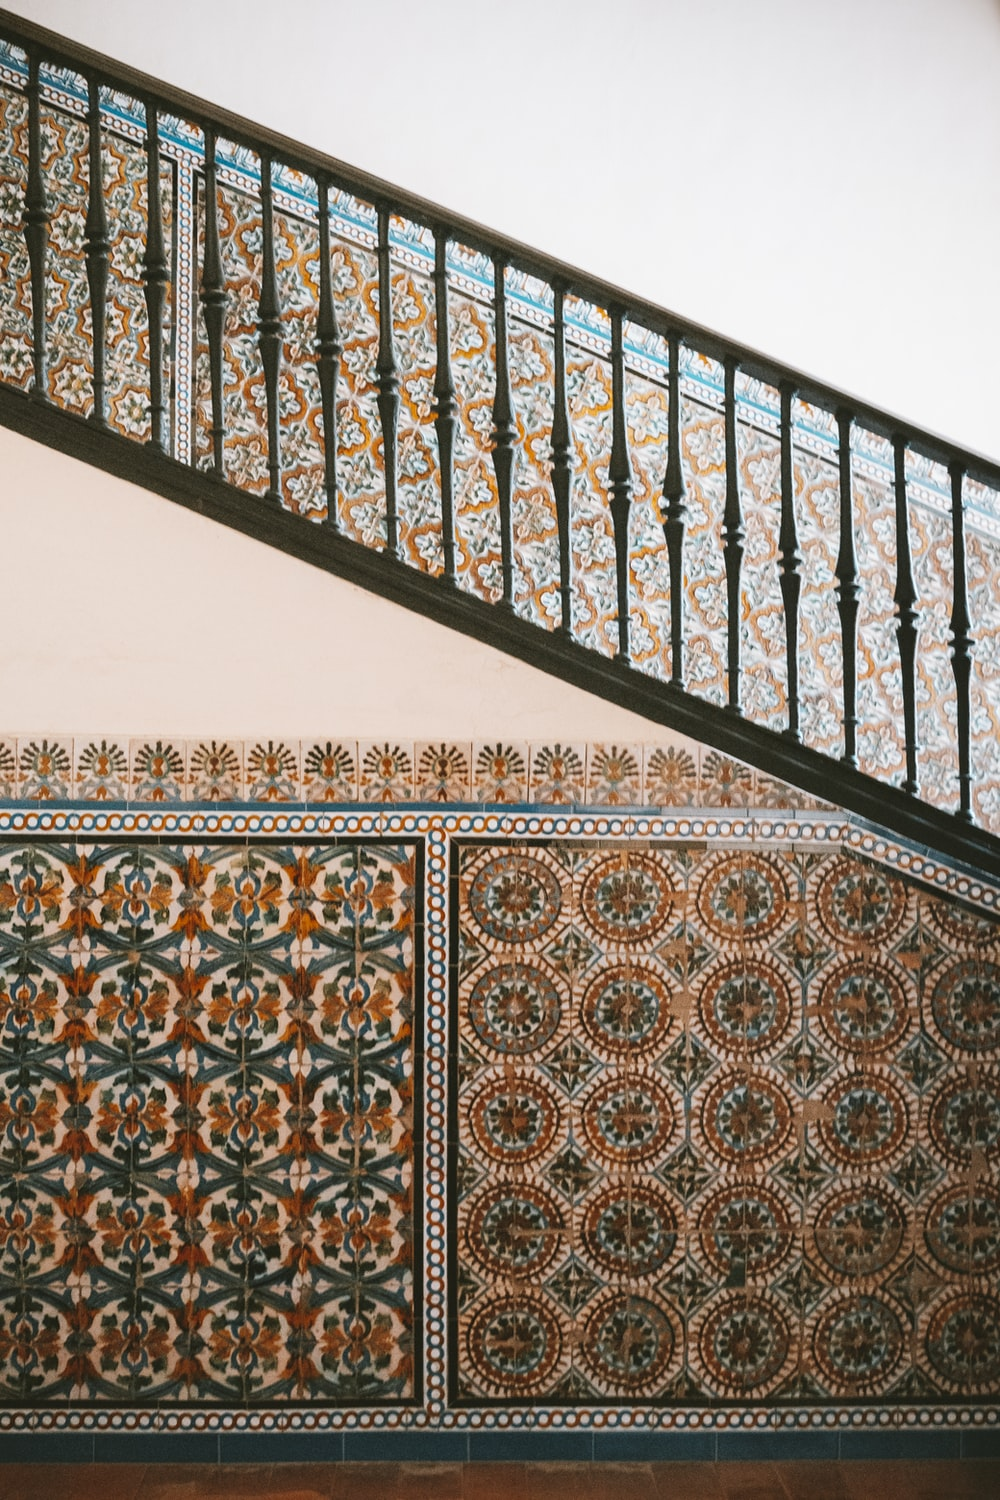 Moroccan design on the wall